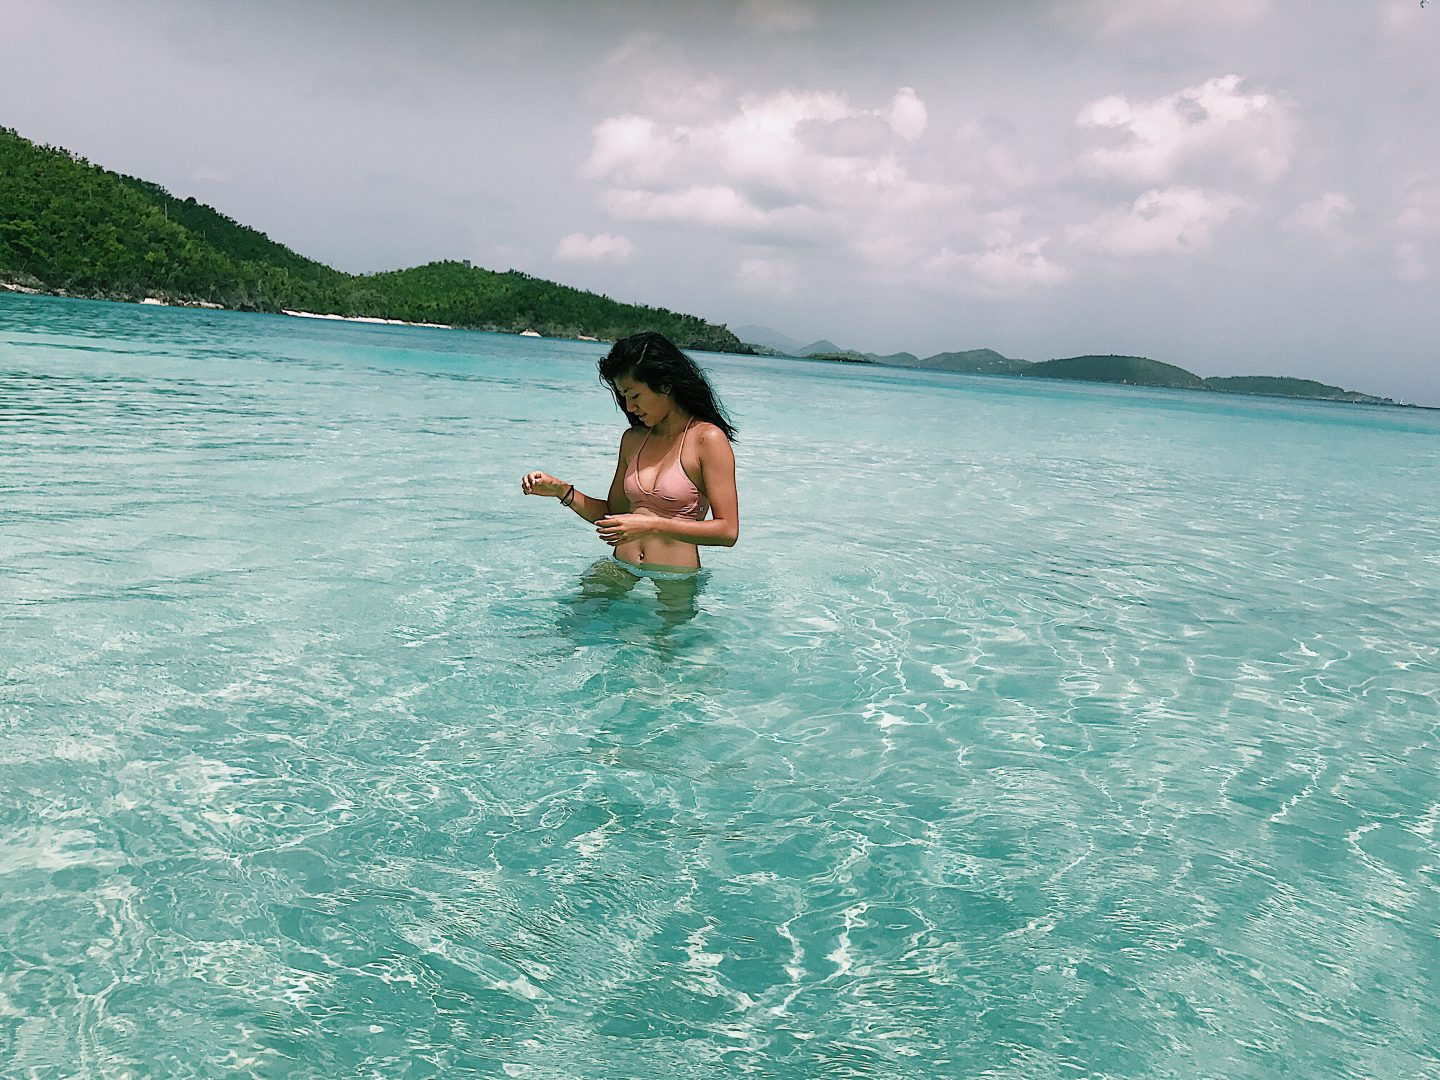 Heading to the Caribbean soon? Los Angeles Lifestyle blogger Michelle from My Teacher Got Style is sharing her best Caribbean Vacation style HERE!